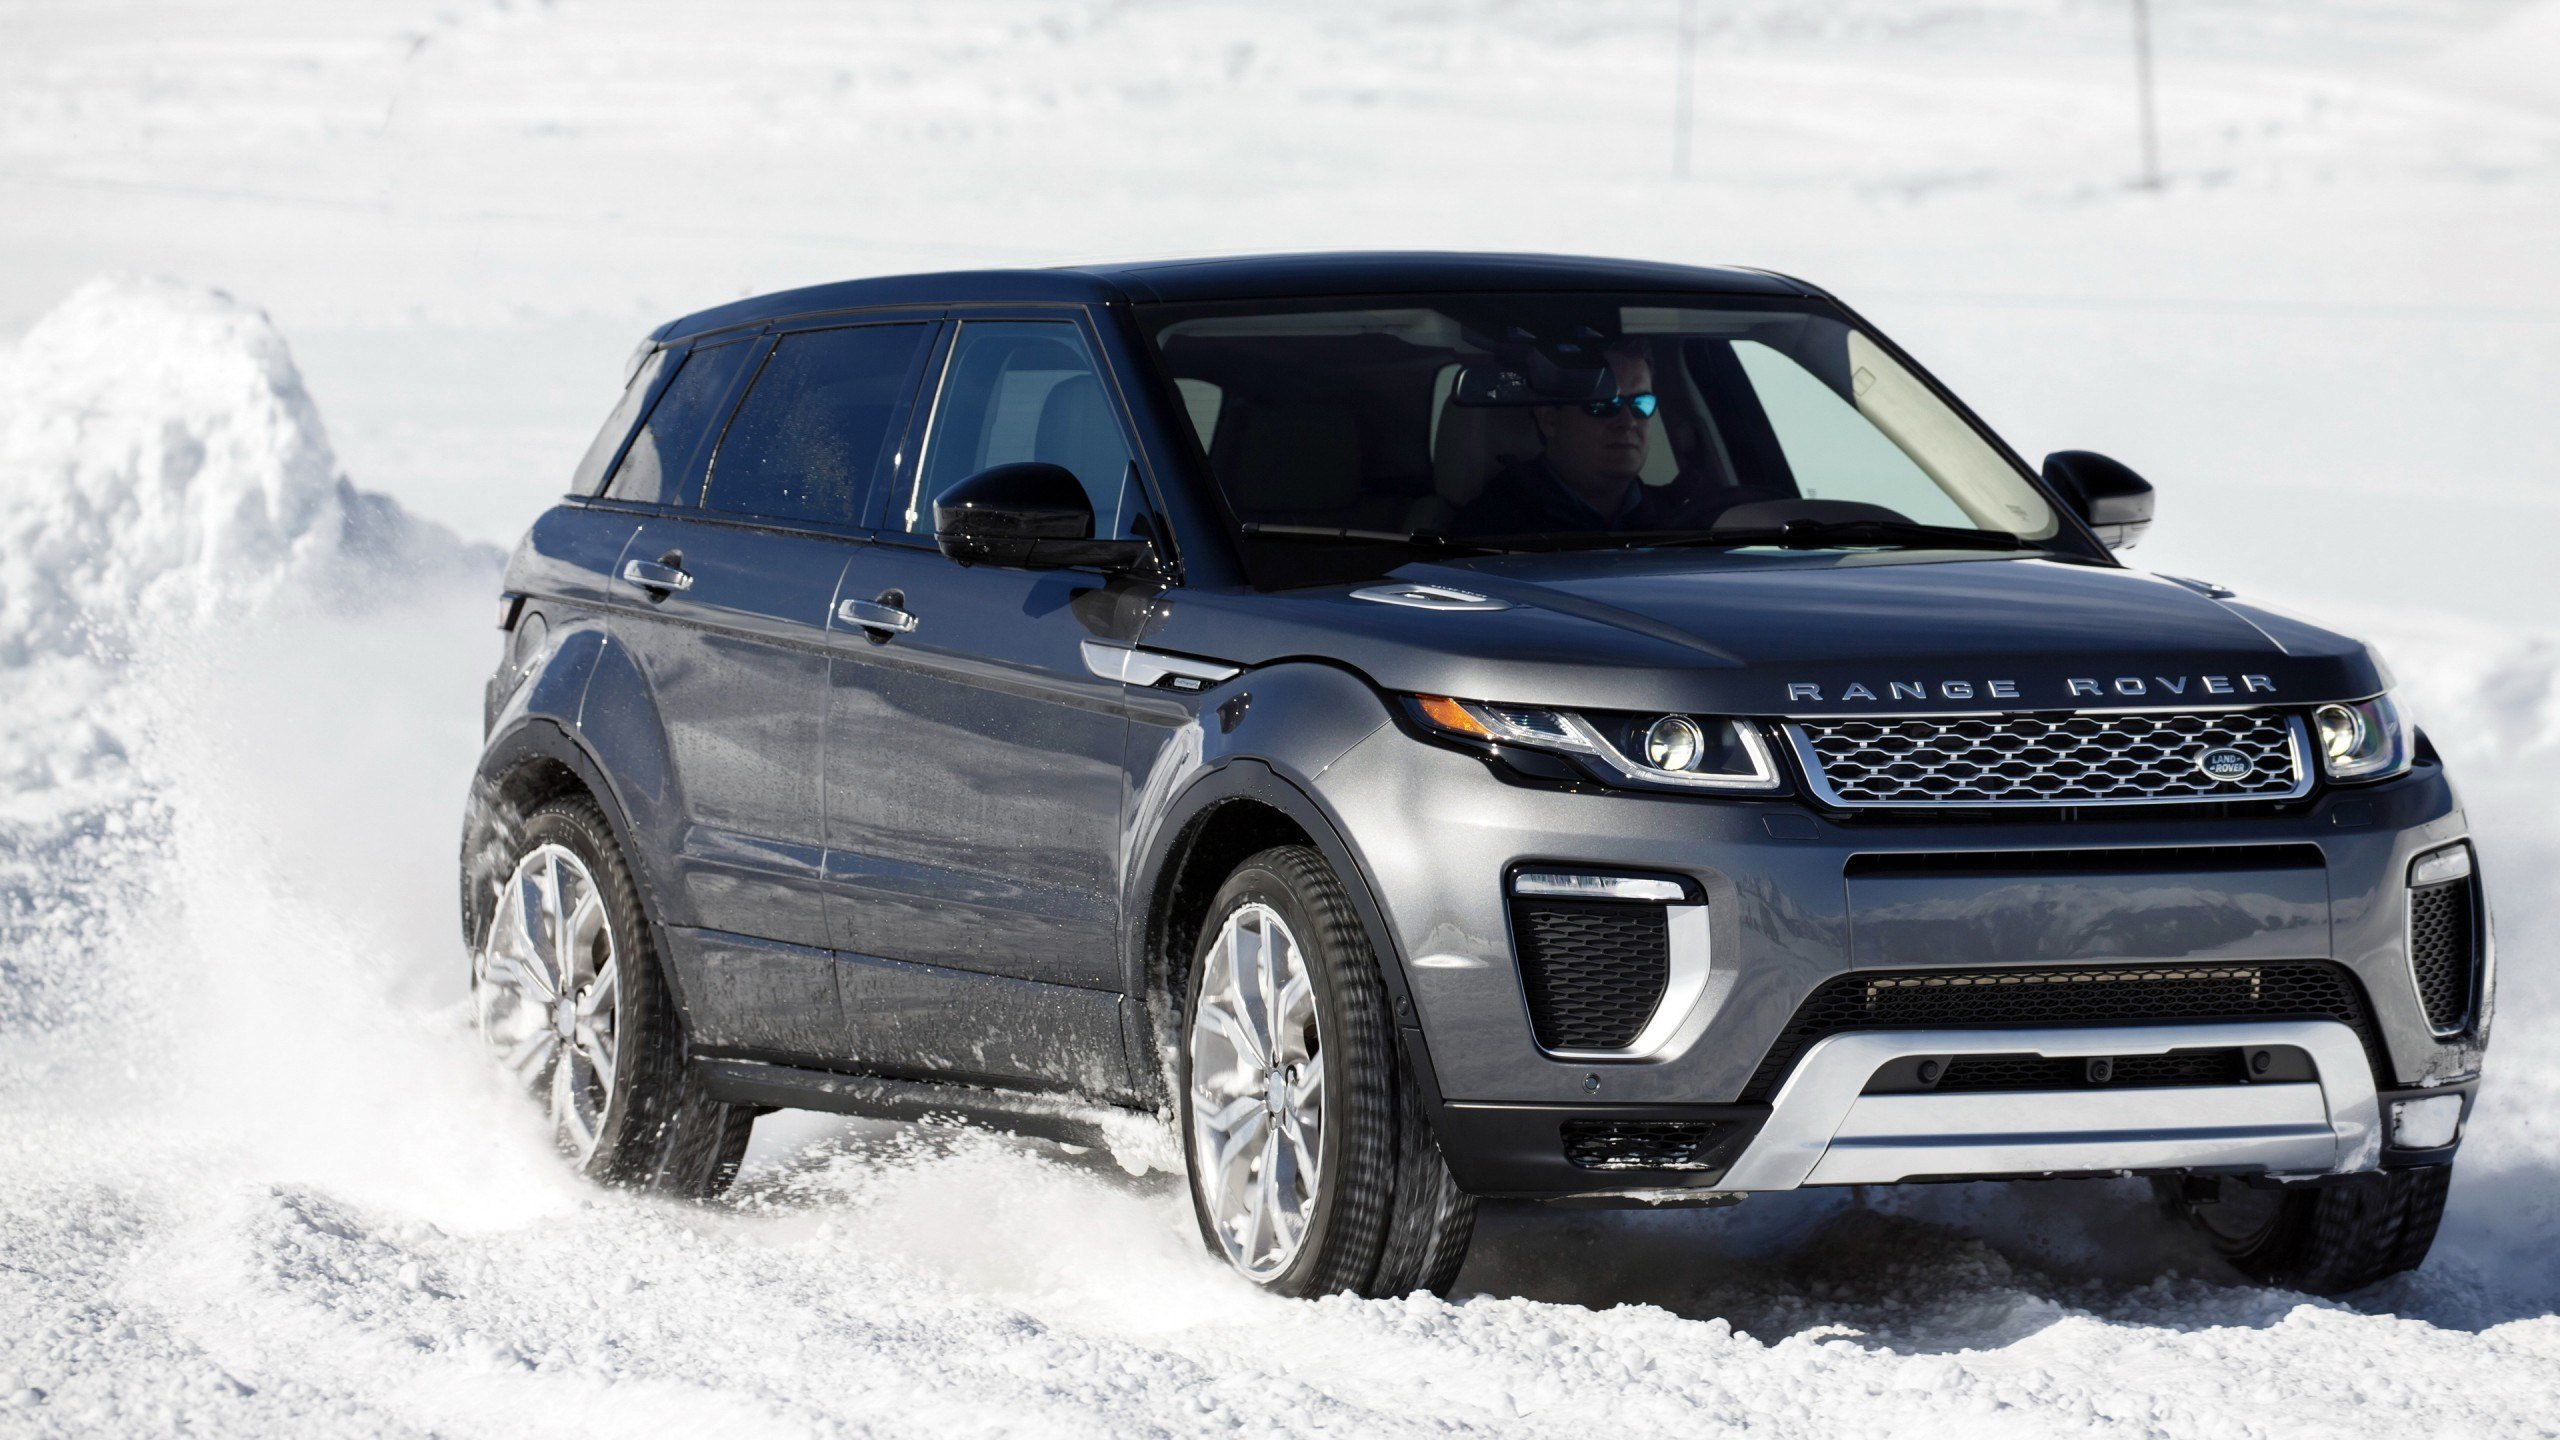 New 2016 Range Rover Evoque Autobiography 4K Wallpaper Hd On This Month